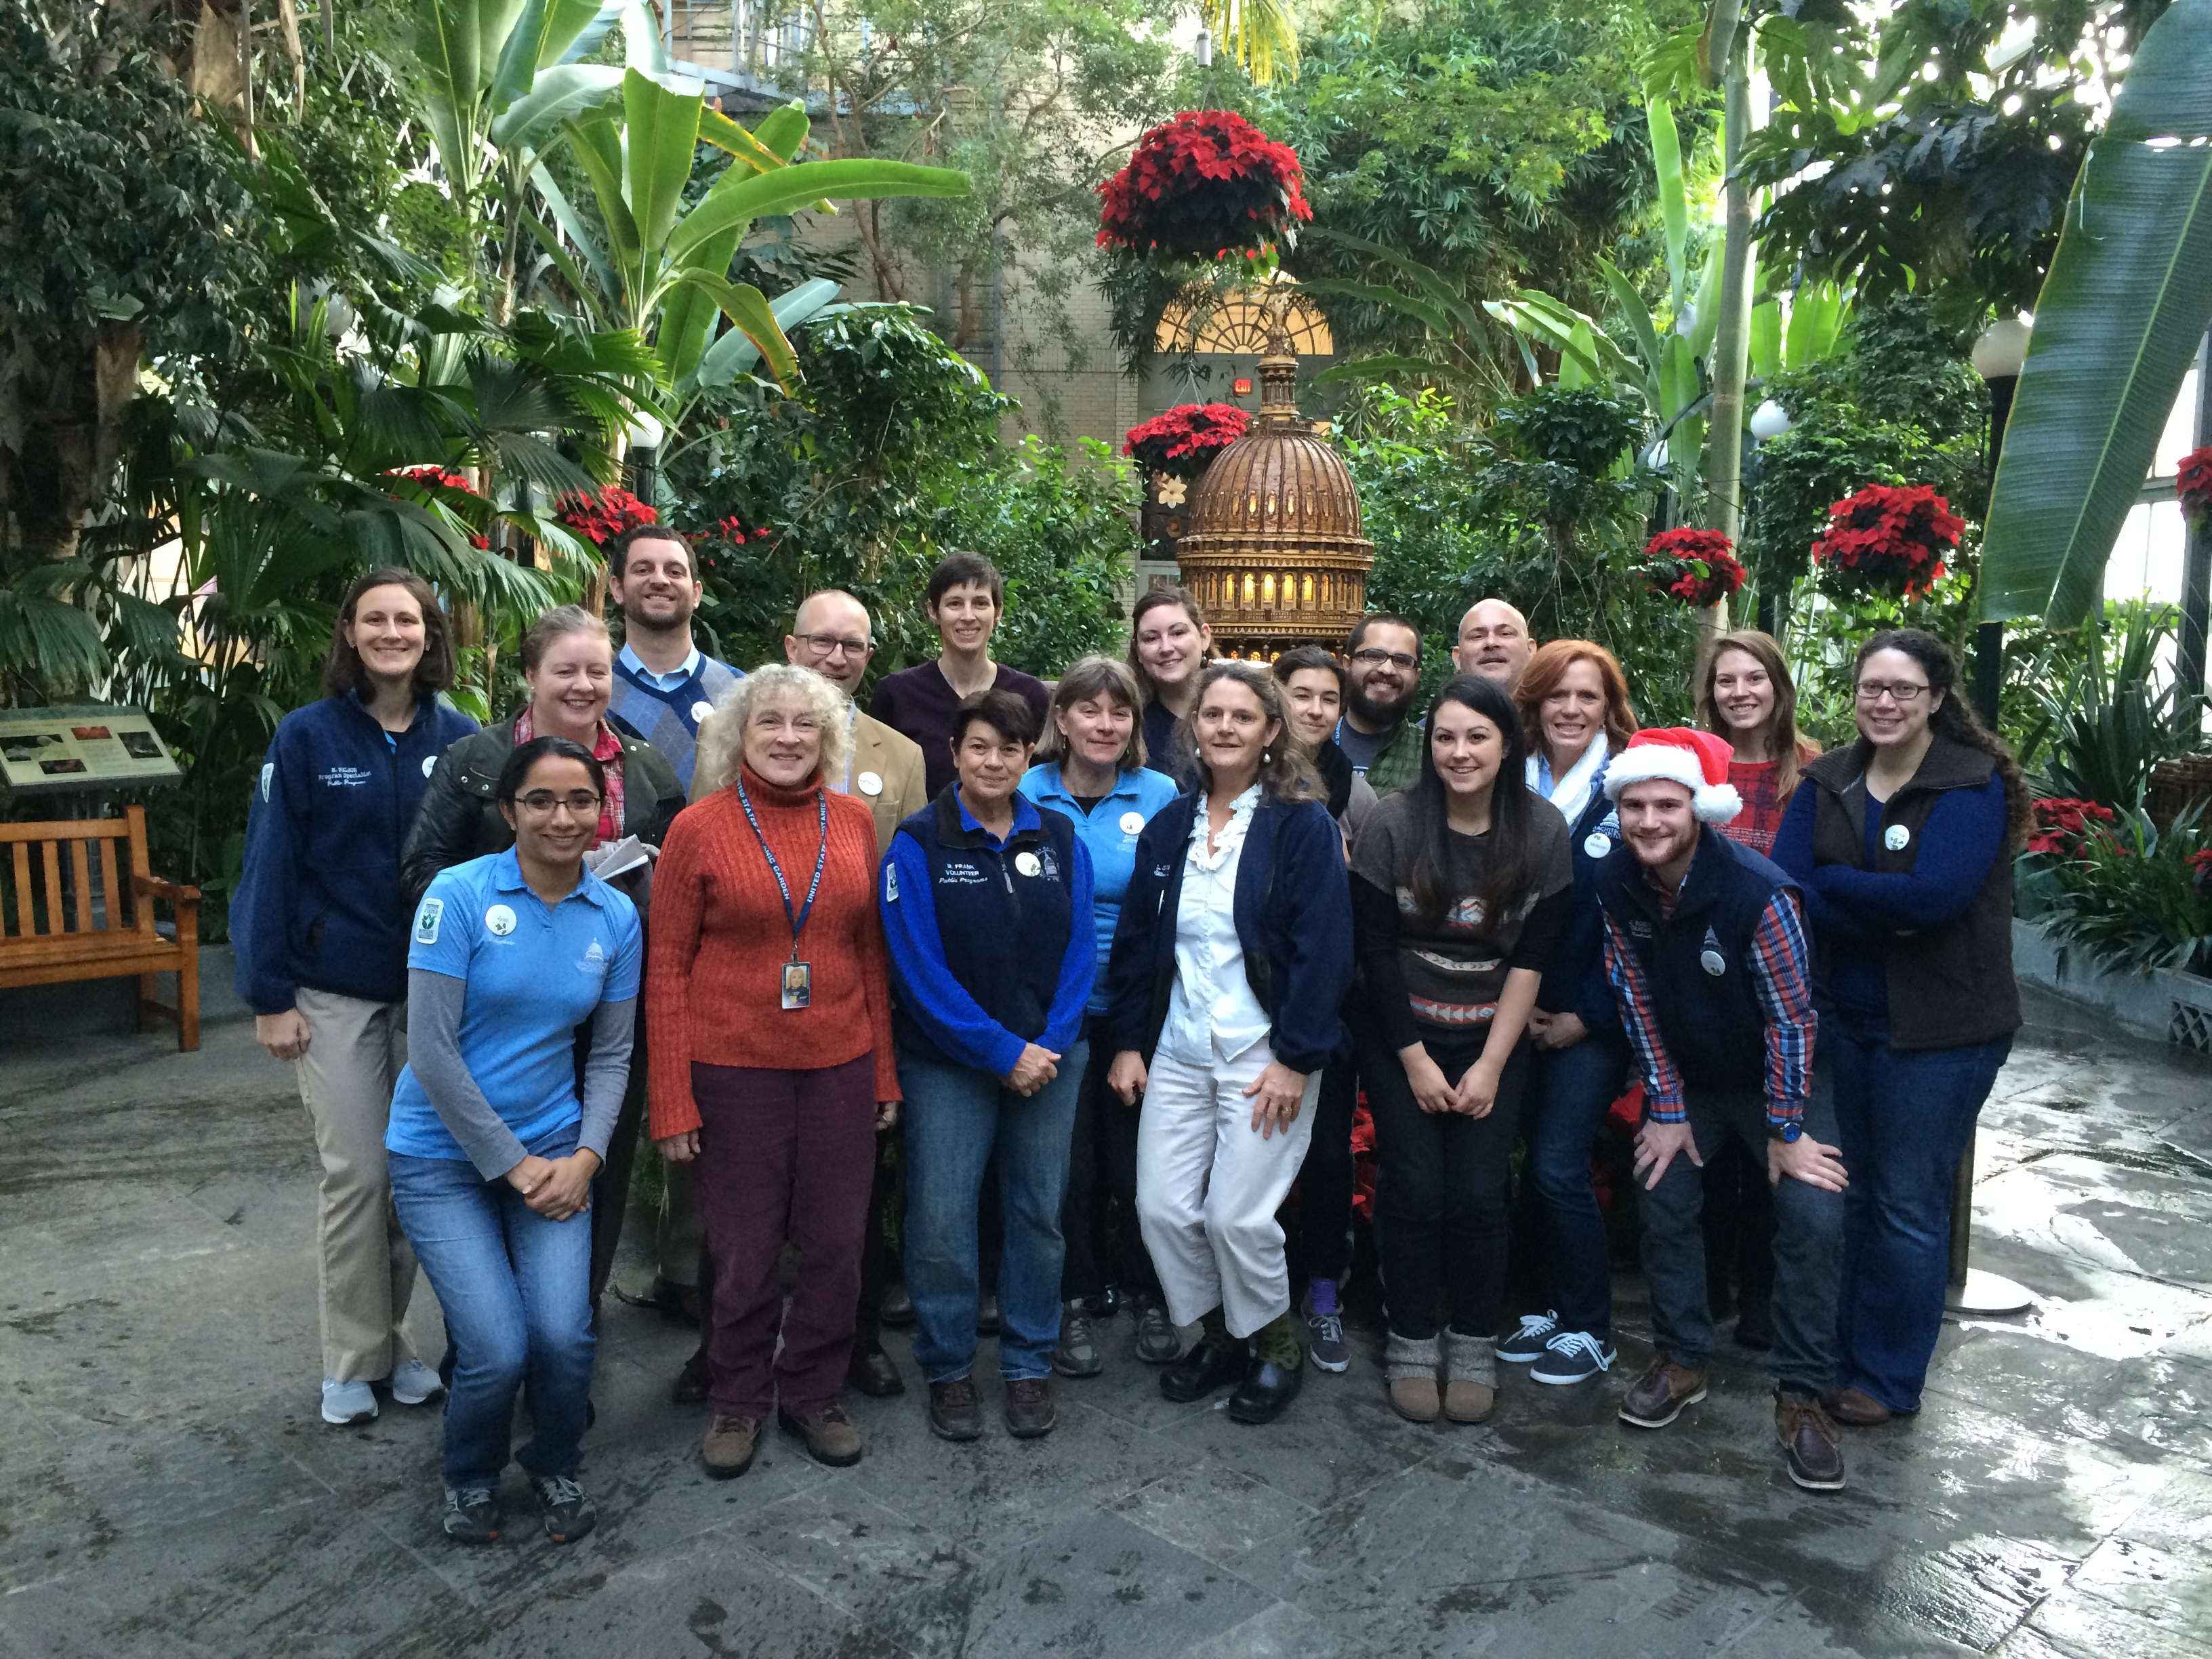 Photo of staff and volunteers from the U.S. Botanic Garden.